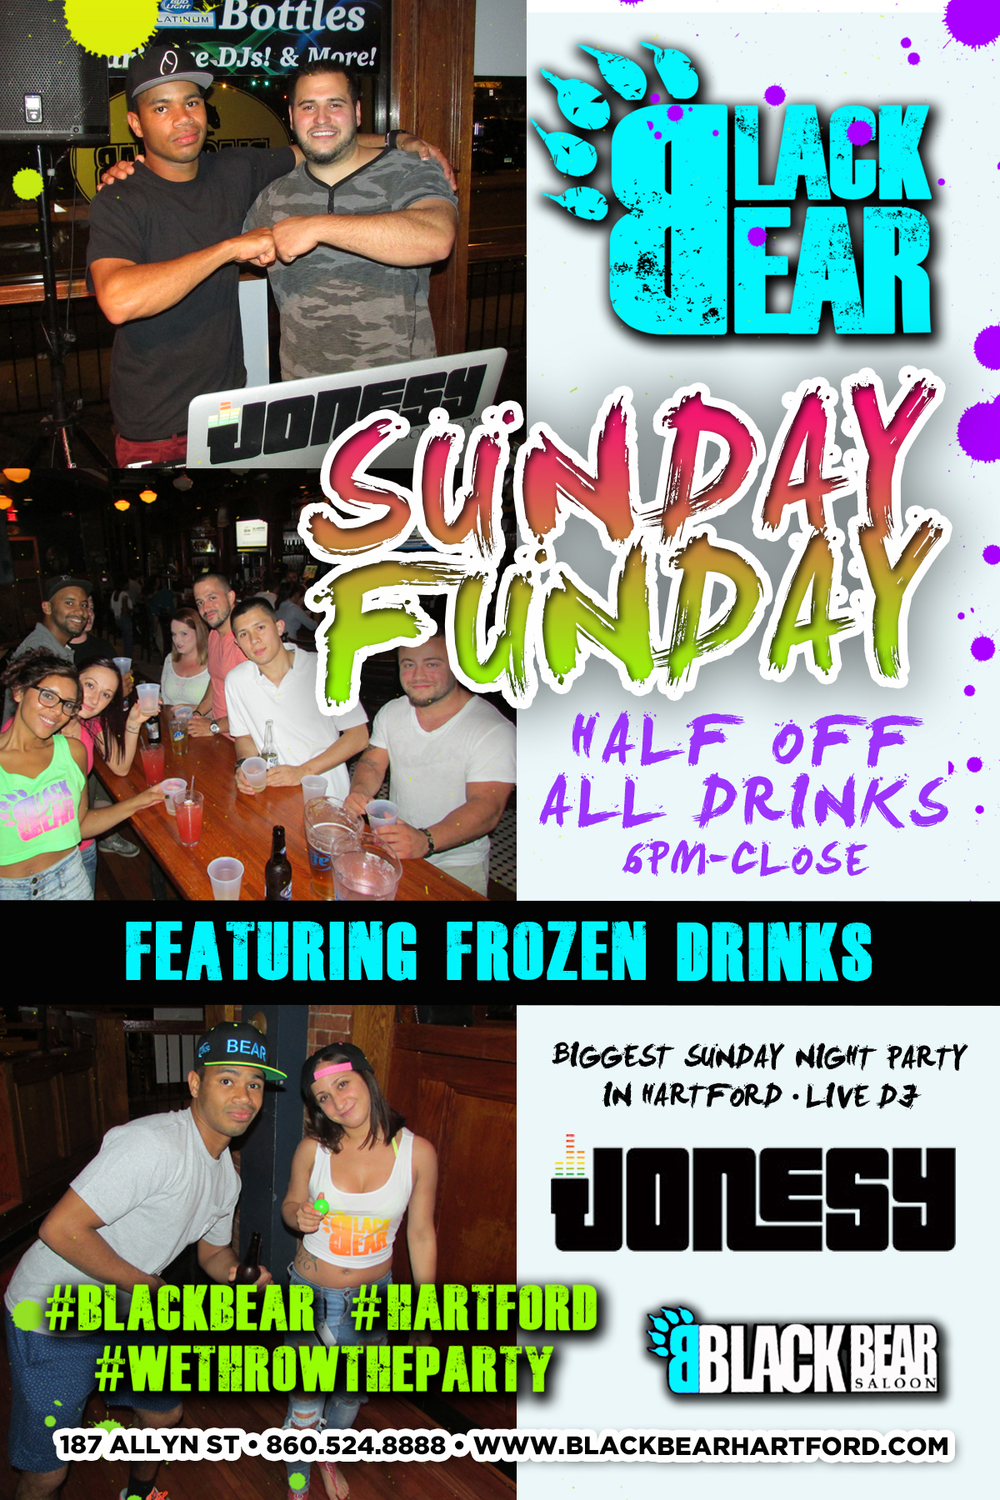 Each and every Sunday join as at Black Bear for Half Priced Drinks + Music by JONESY until close!  Biggest Sunday Night Party in Hartford! #BLACKBEAR #HARTFORD #WETHROWTHEPARTY